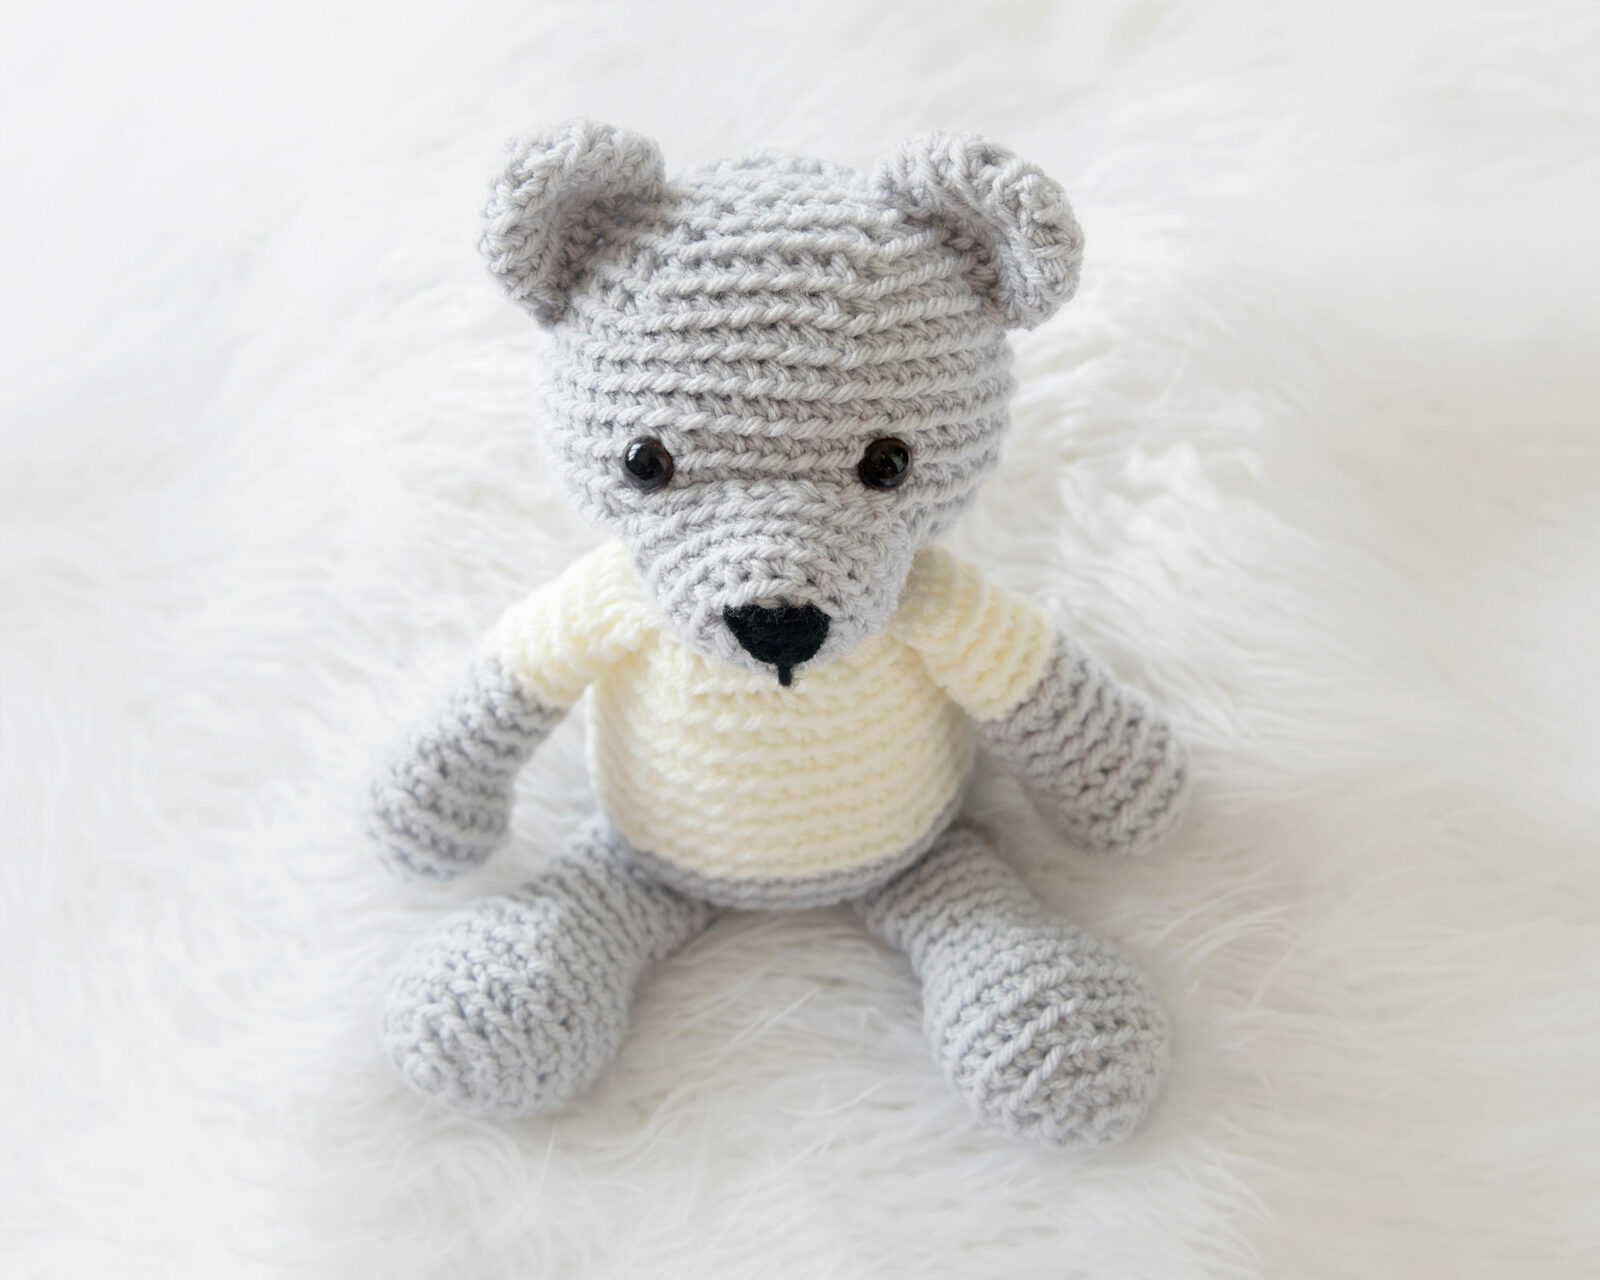 Amigurumi Free Patterns Bear : Crochet teddy bear free pattern! leelee knits